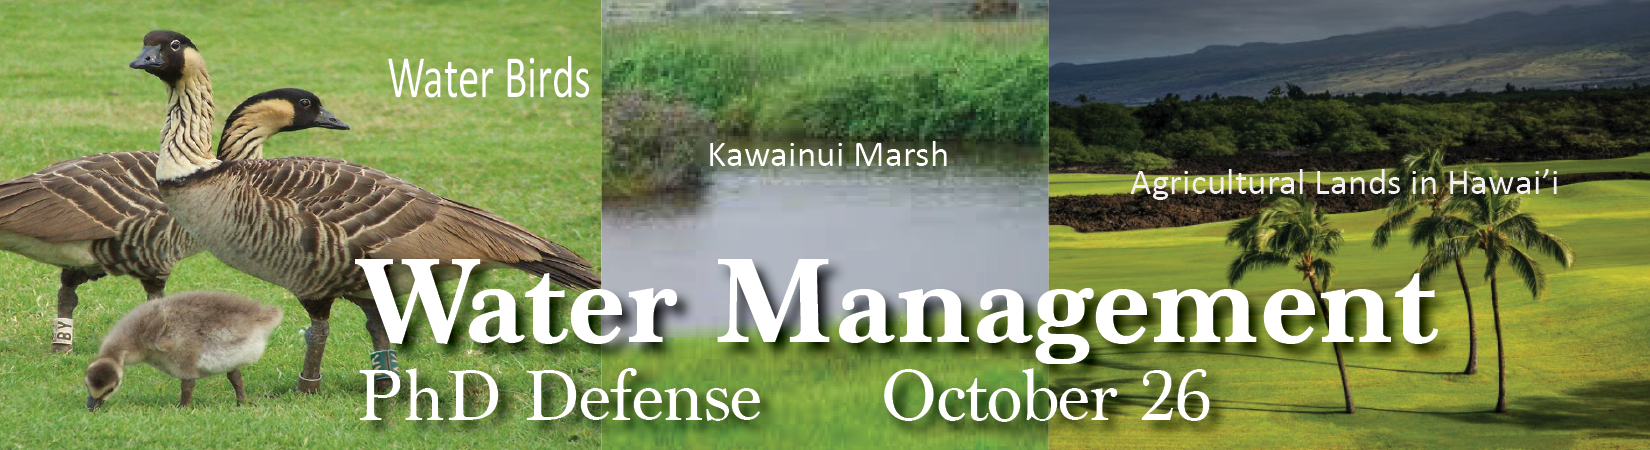 Water managment, Oct 26